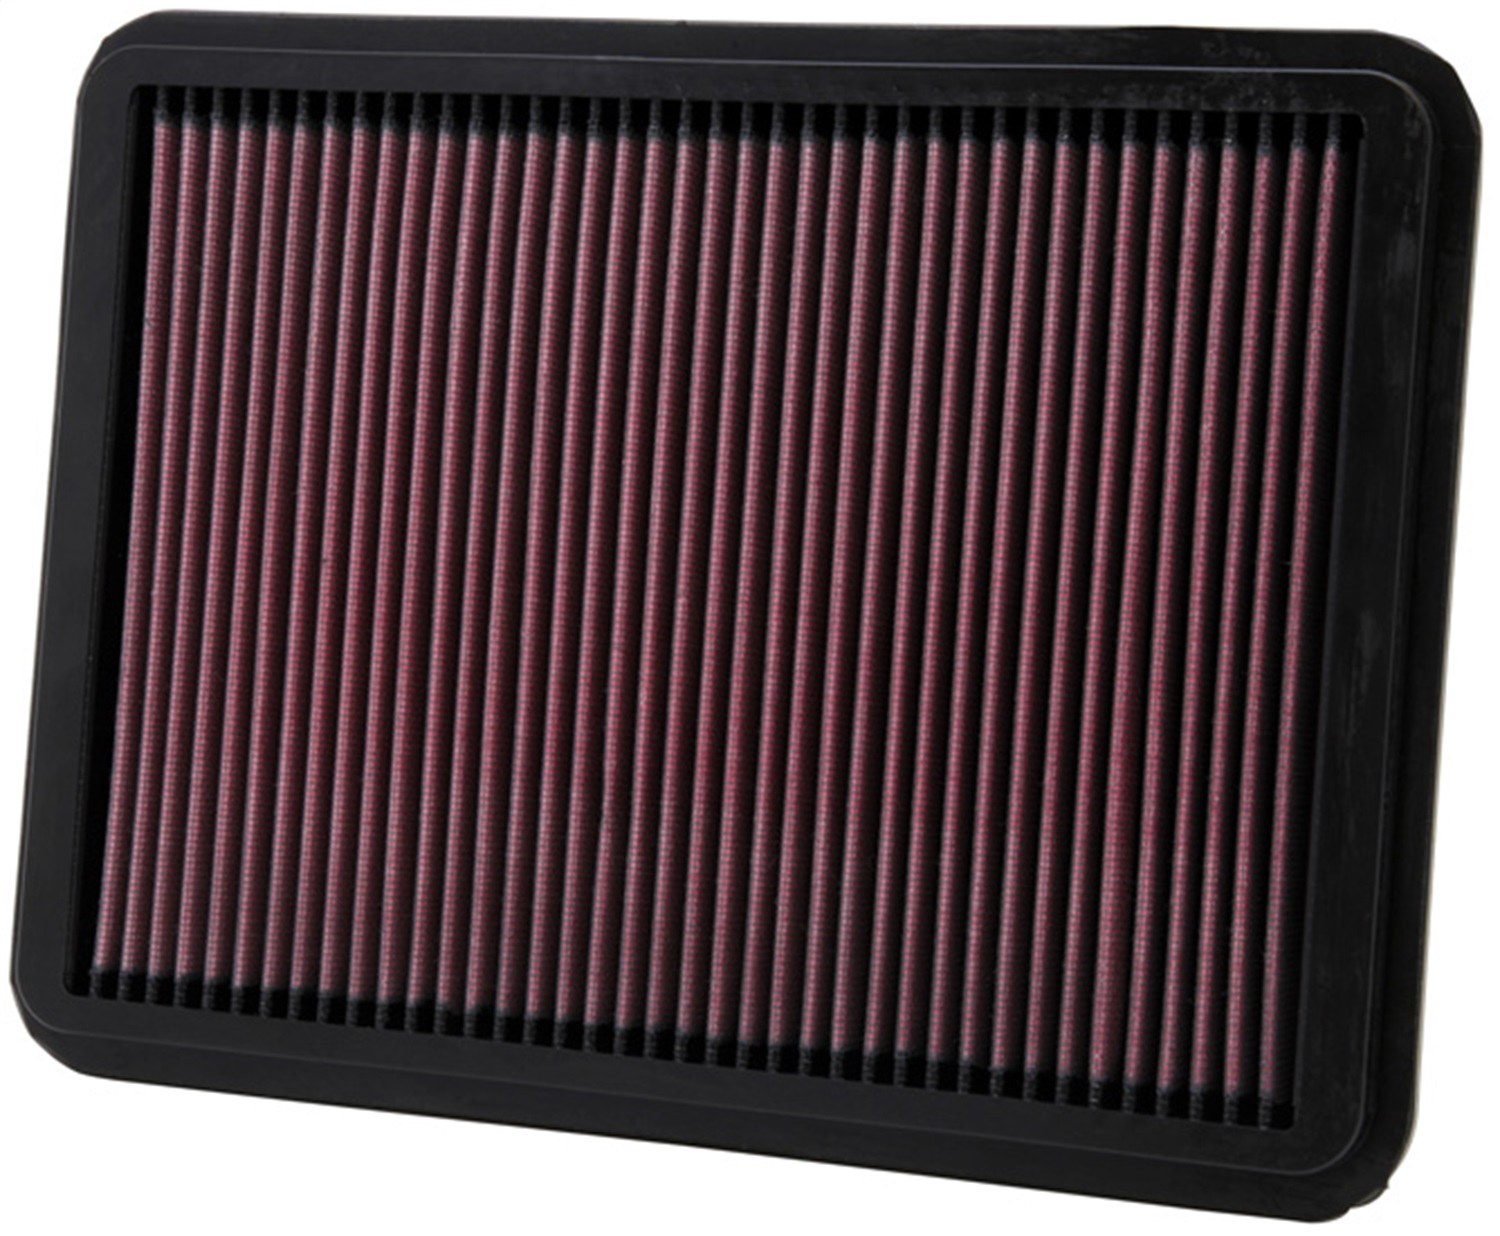 K&N Filters 33-2144 Air Filter Fits 00-09 4Runner GX470 Sequoia Tundra 33-2144